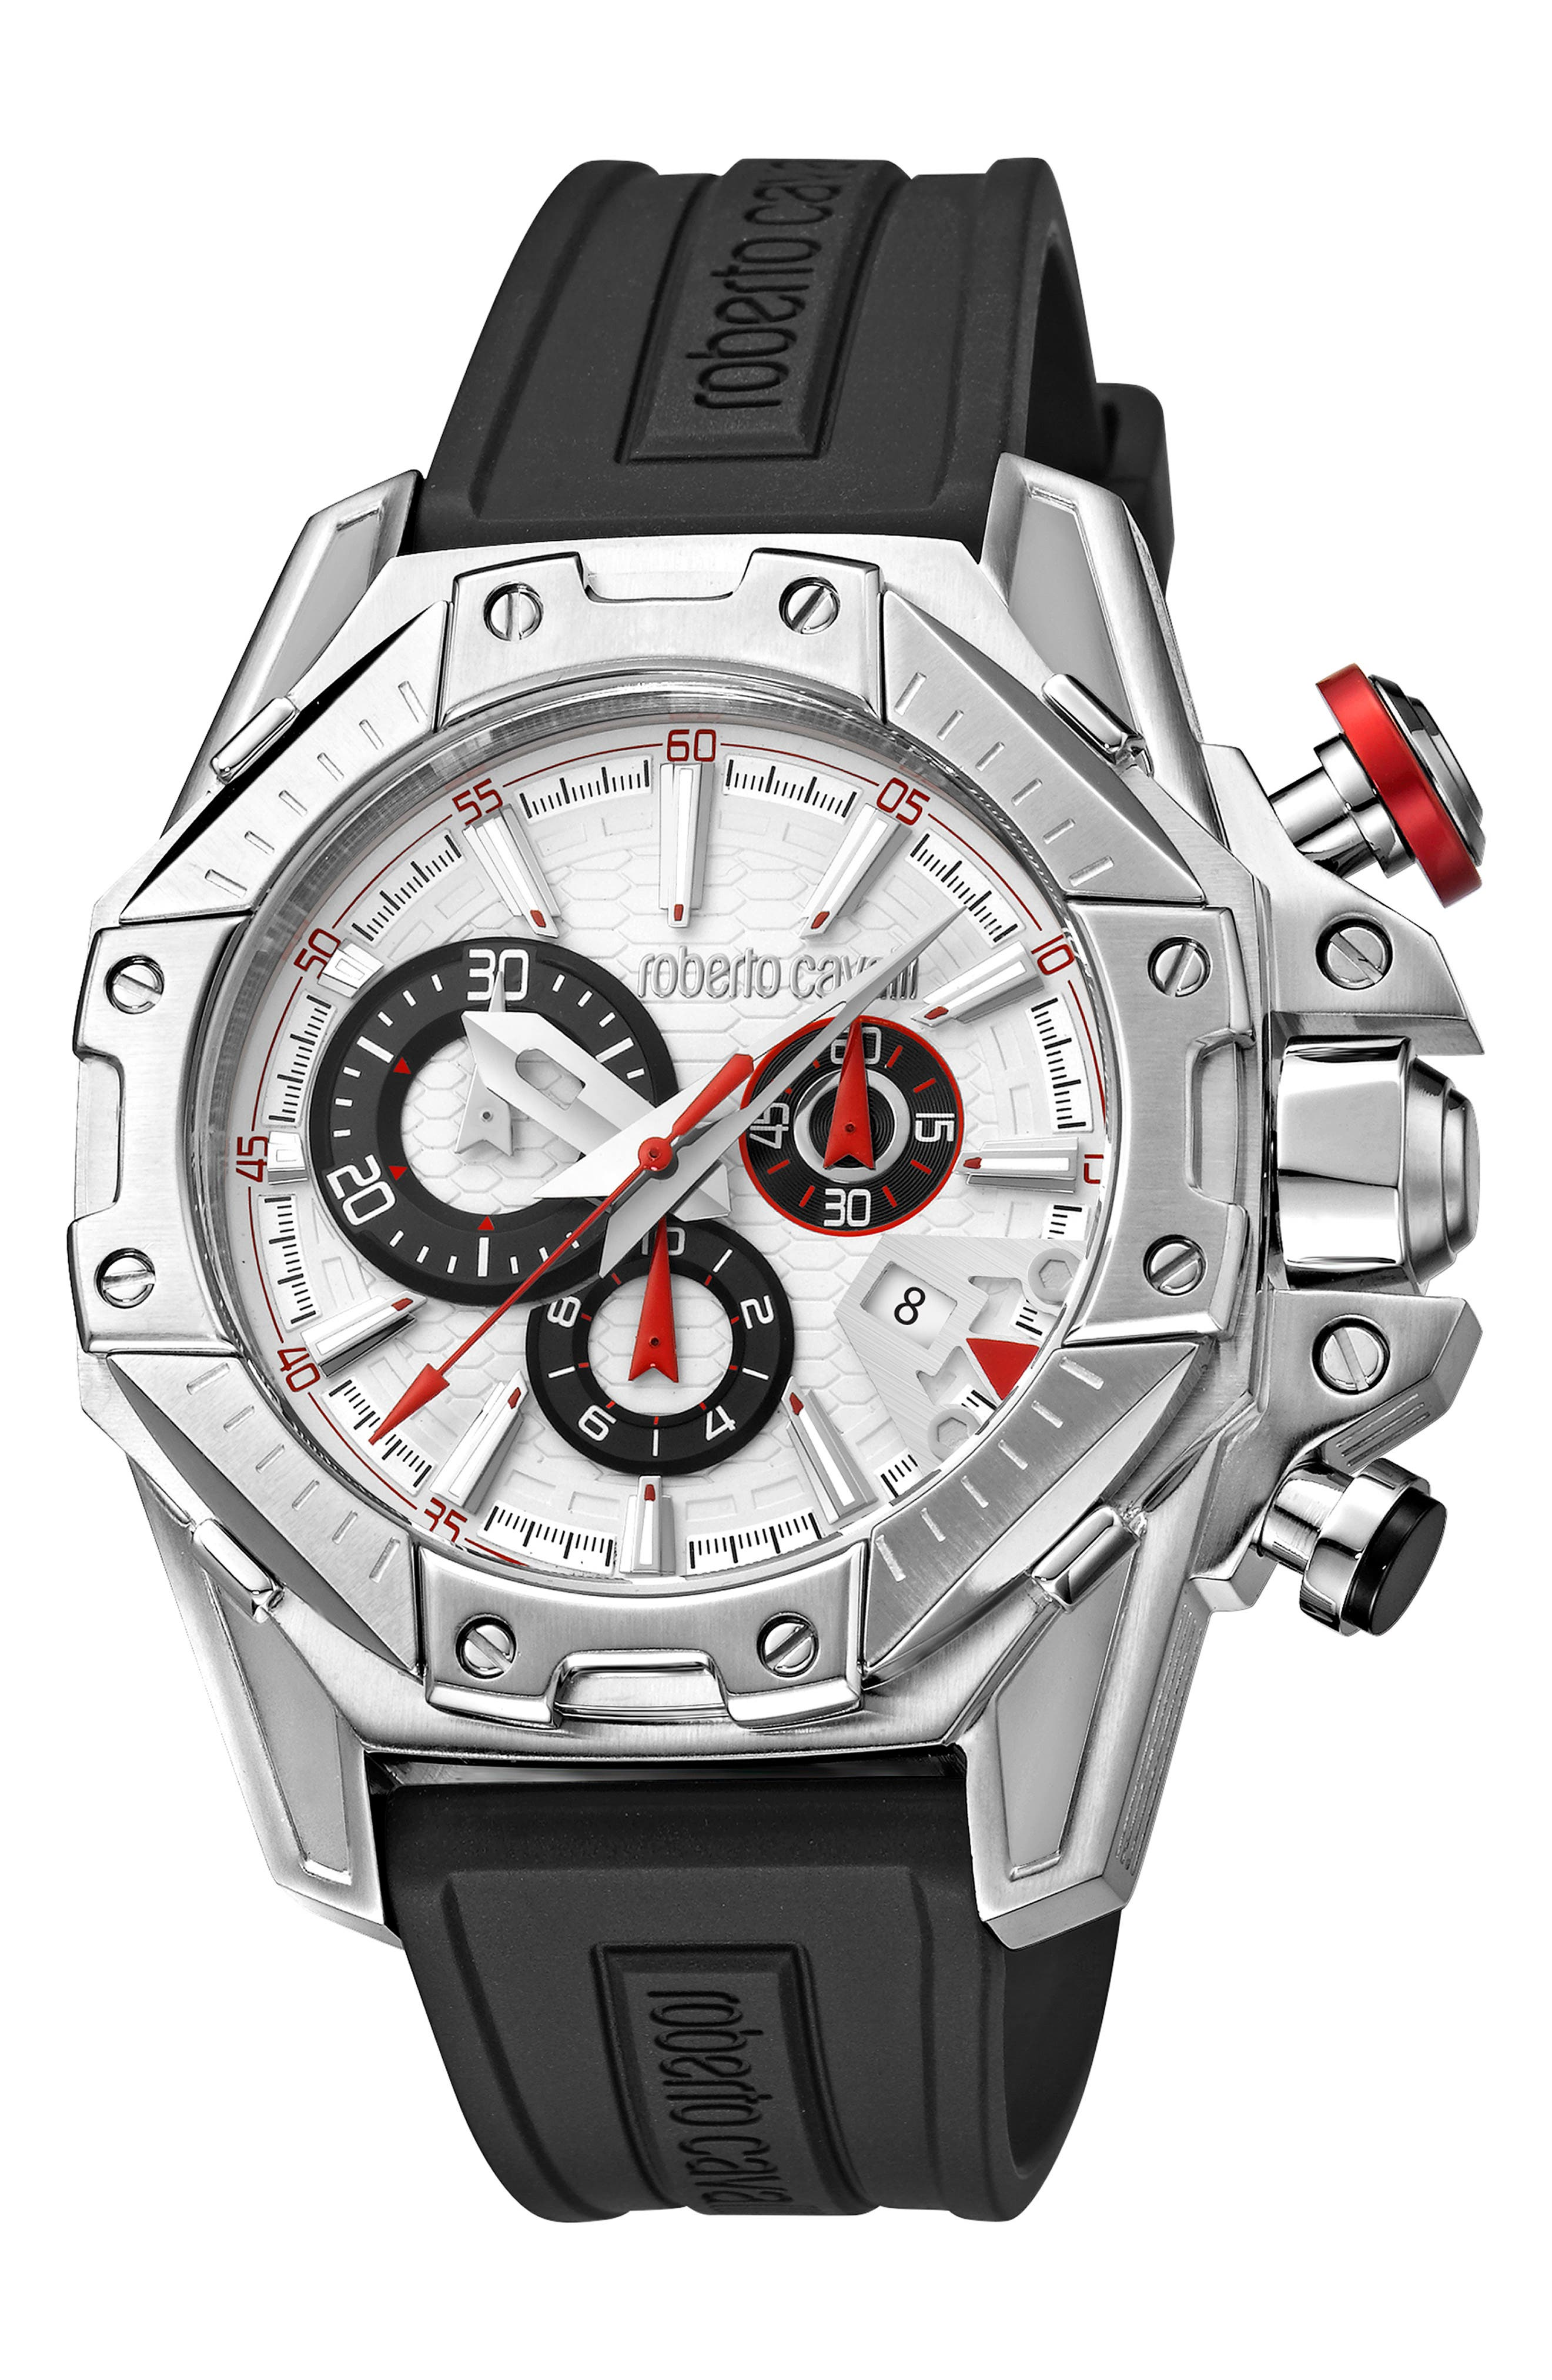 ROBERTO CAVALLI BY FRANCK MULLER Viper Chronograph 44Mm Rubber Strap Watch in Black